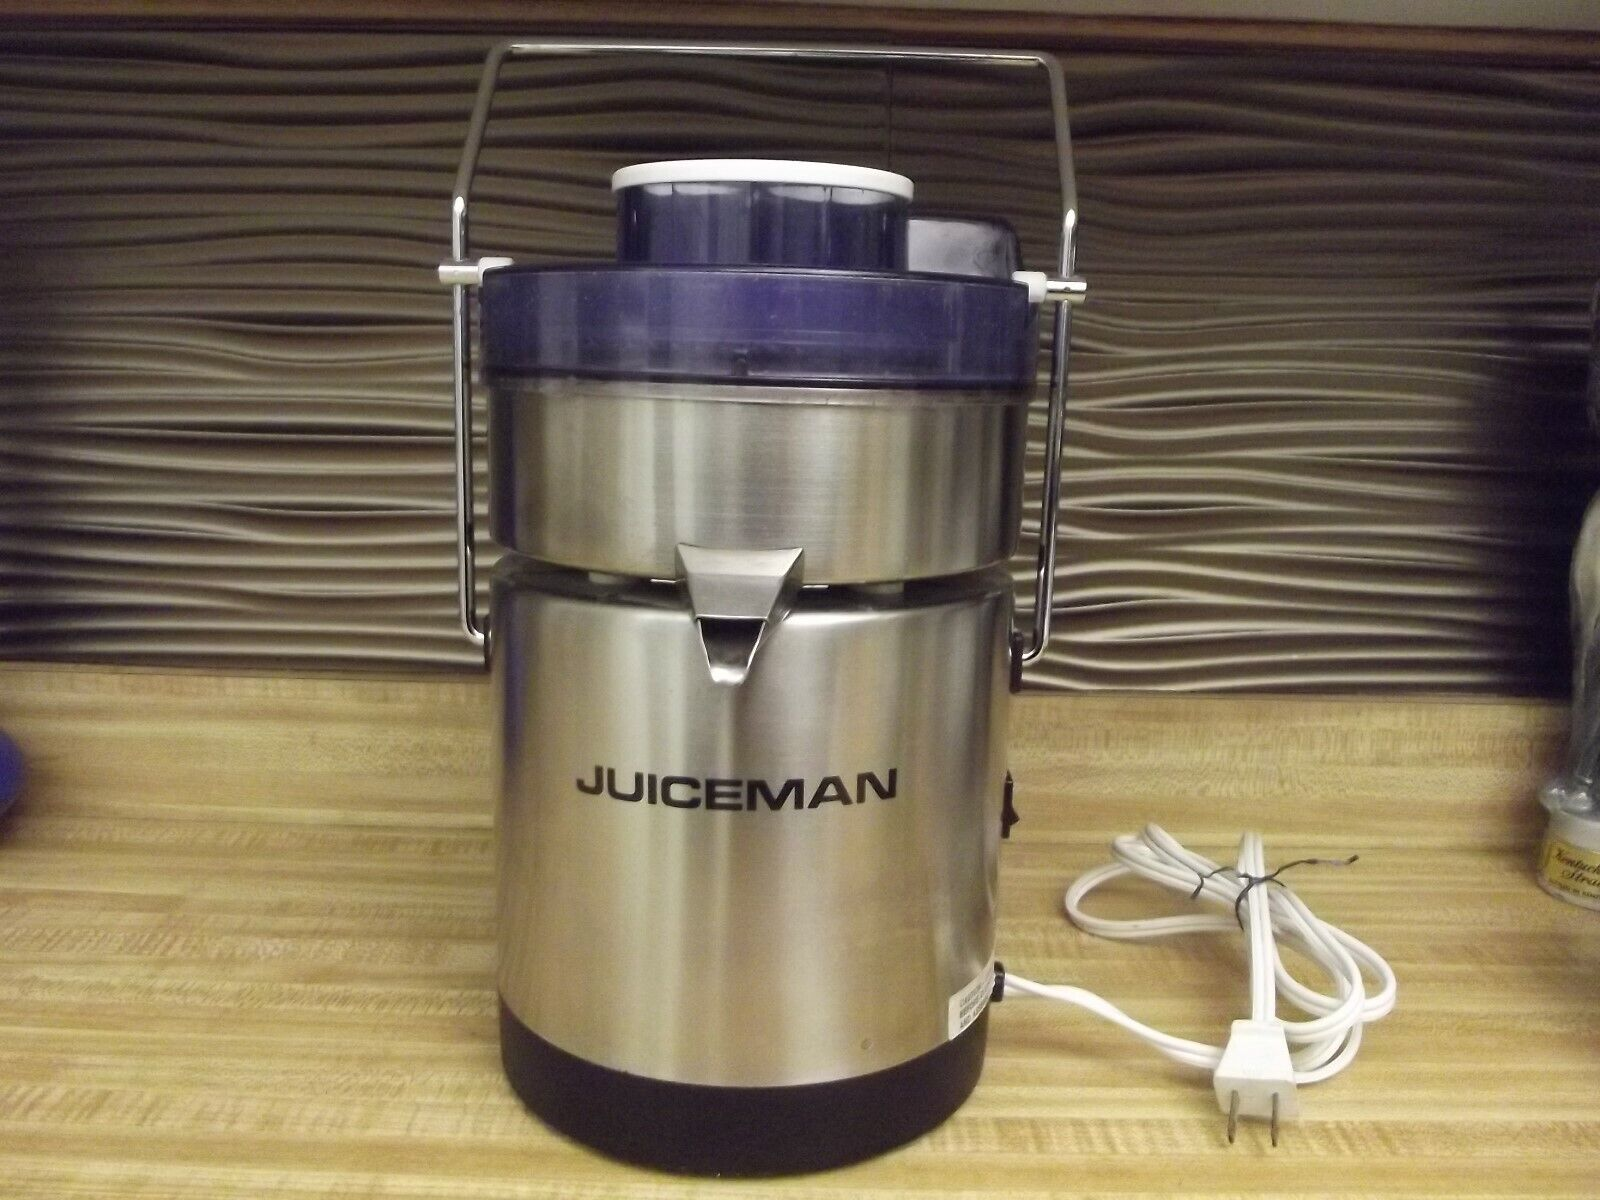 juicer mj 700 automatic vegetable and fruit